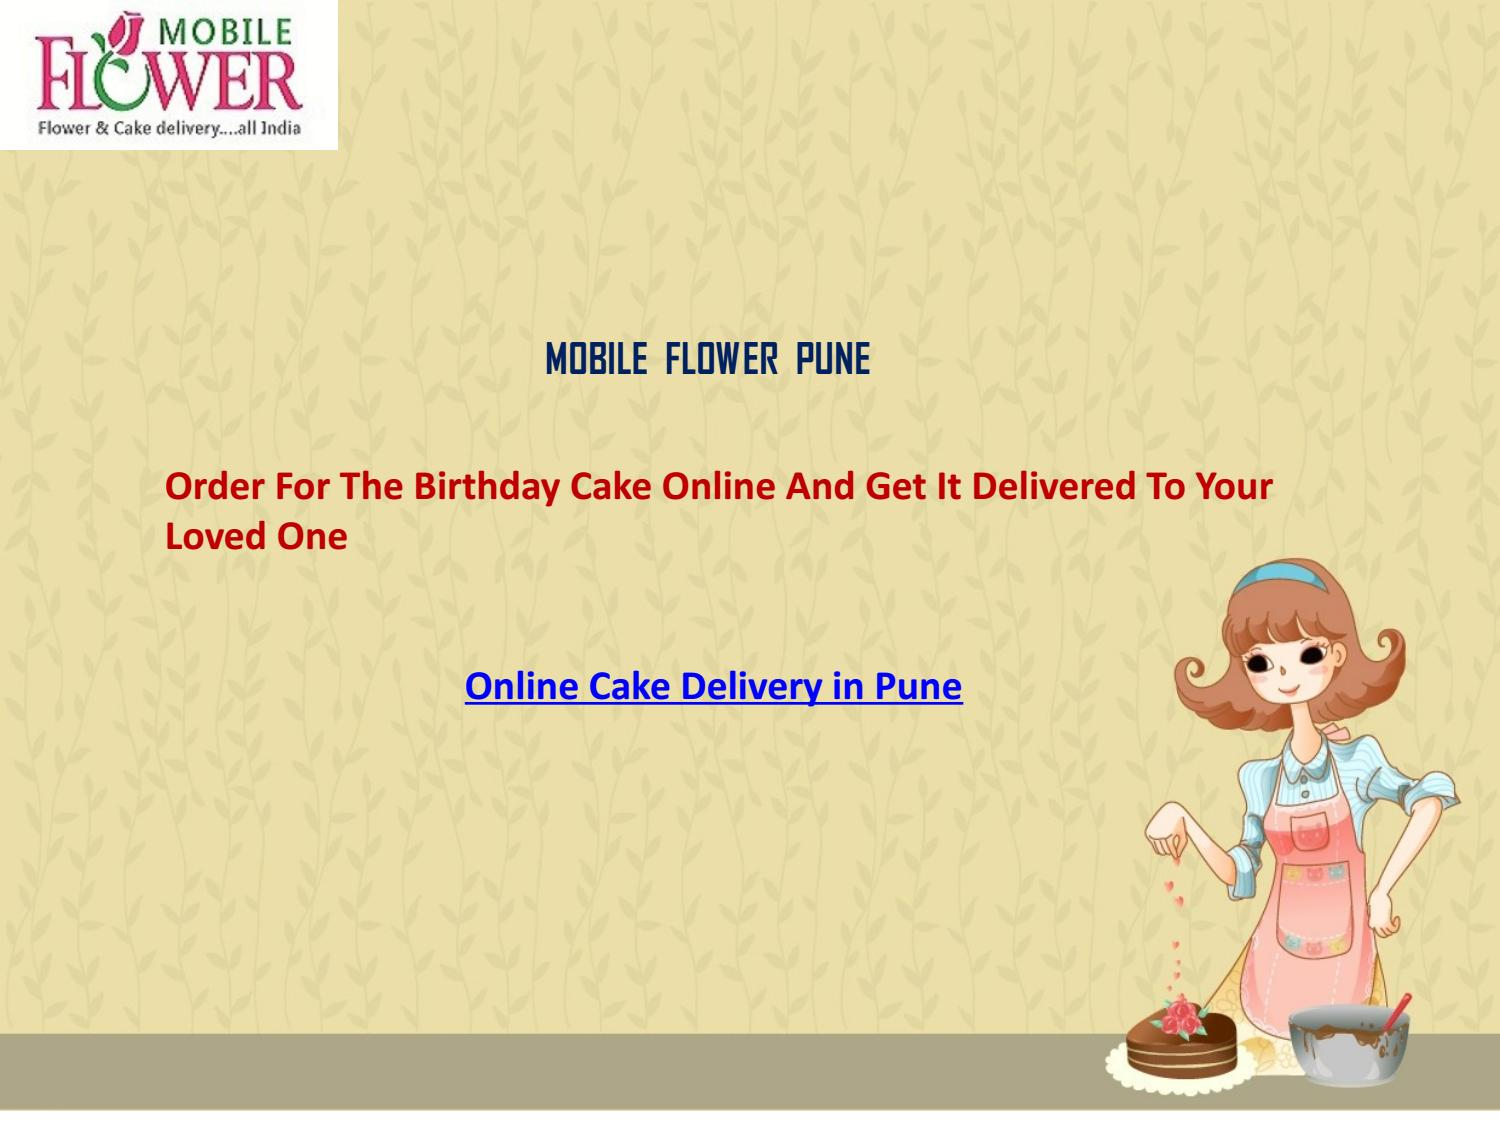 9e80f298c1e11 Order for the birthday cake online and get it delivered to your loved one  by Mobile Flower Pune - issuu